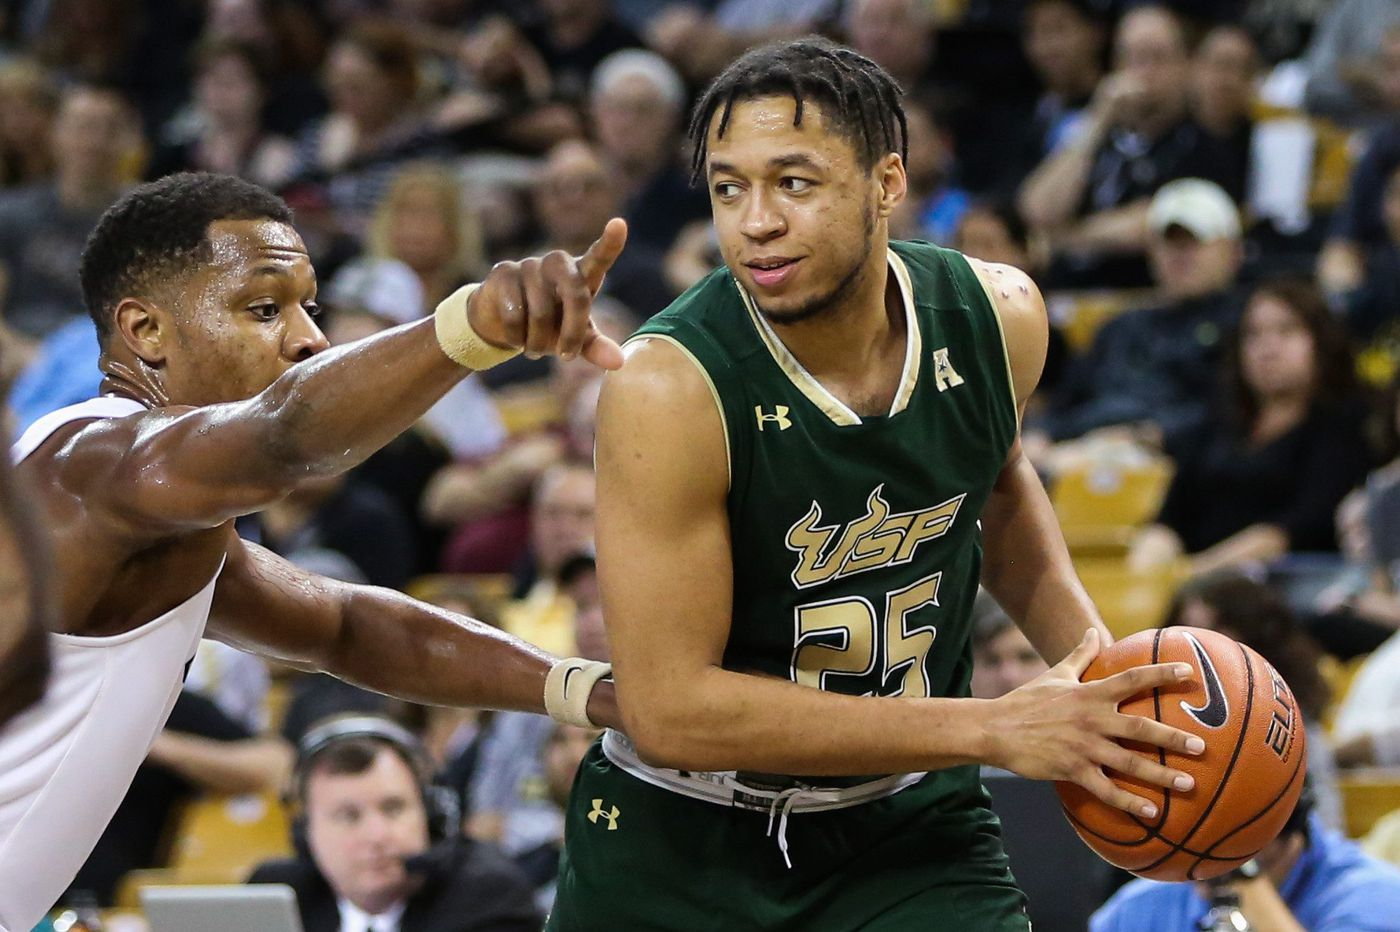 St. Joseph's adds South Florida transfer Troy Holston, bolstering guard depth